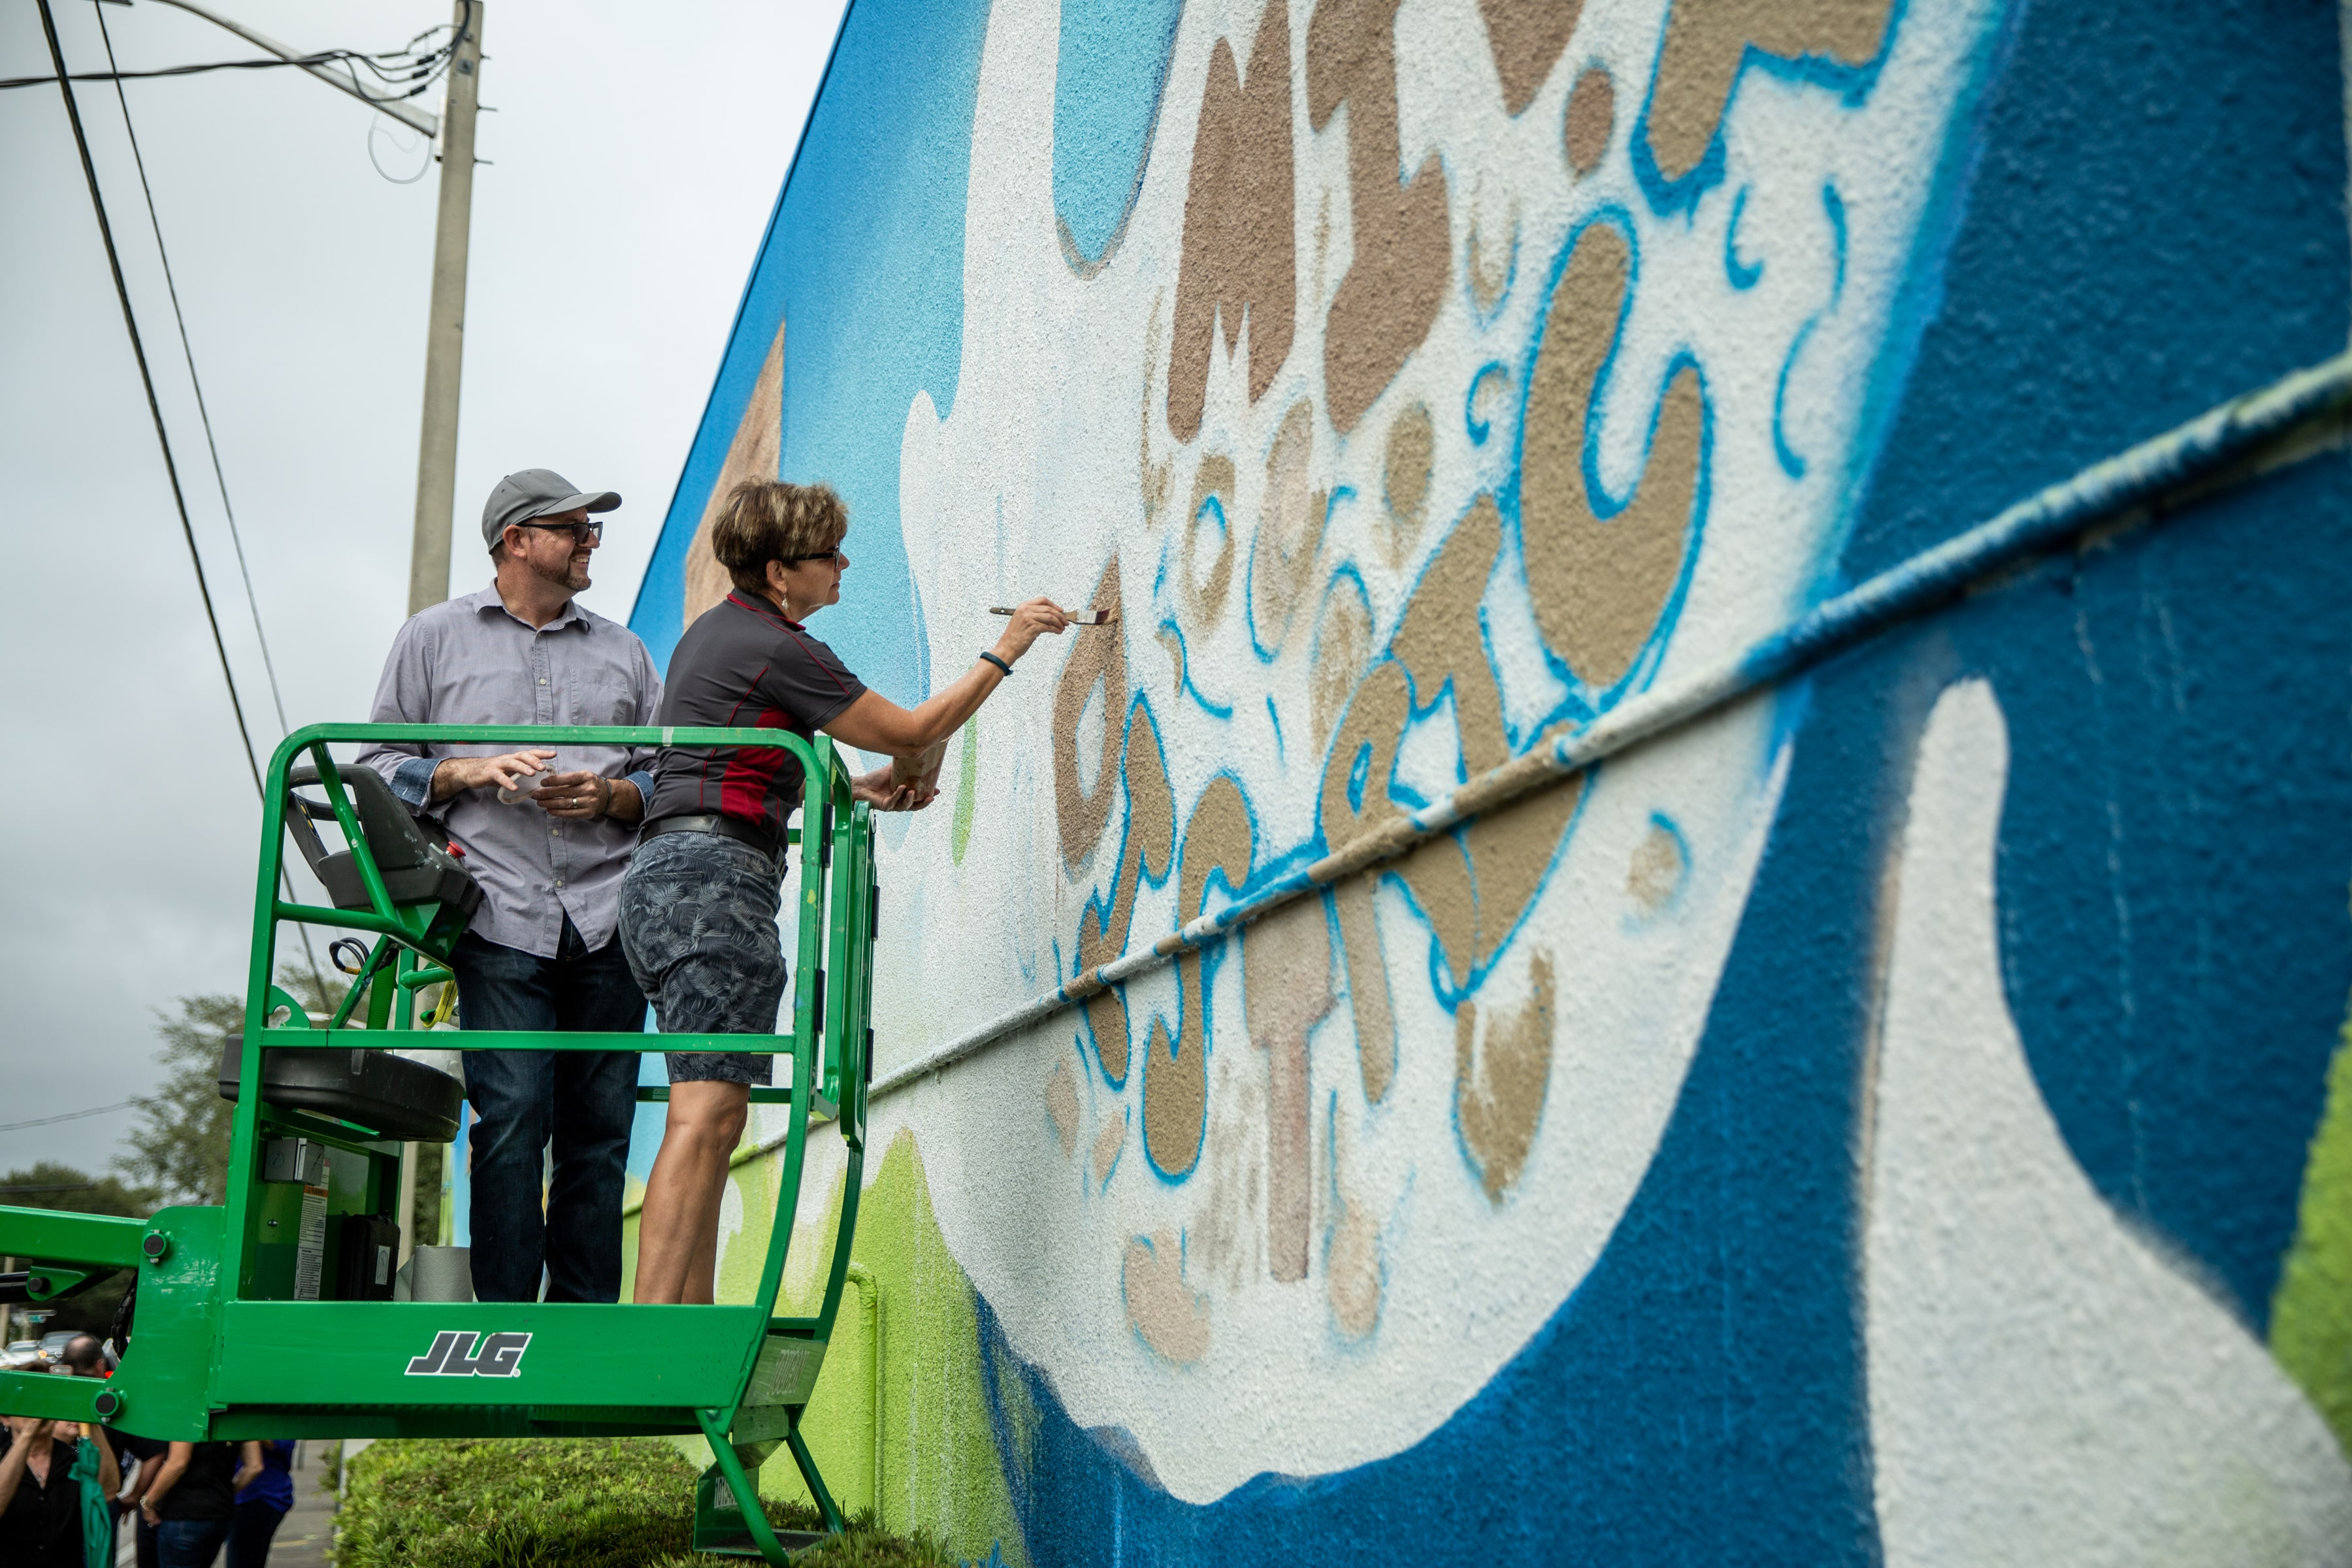 Public official working on mural